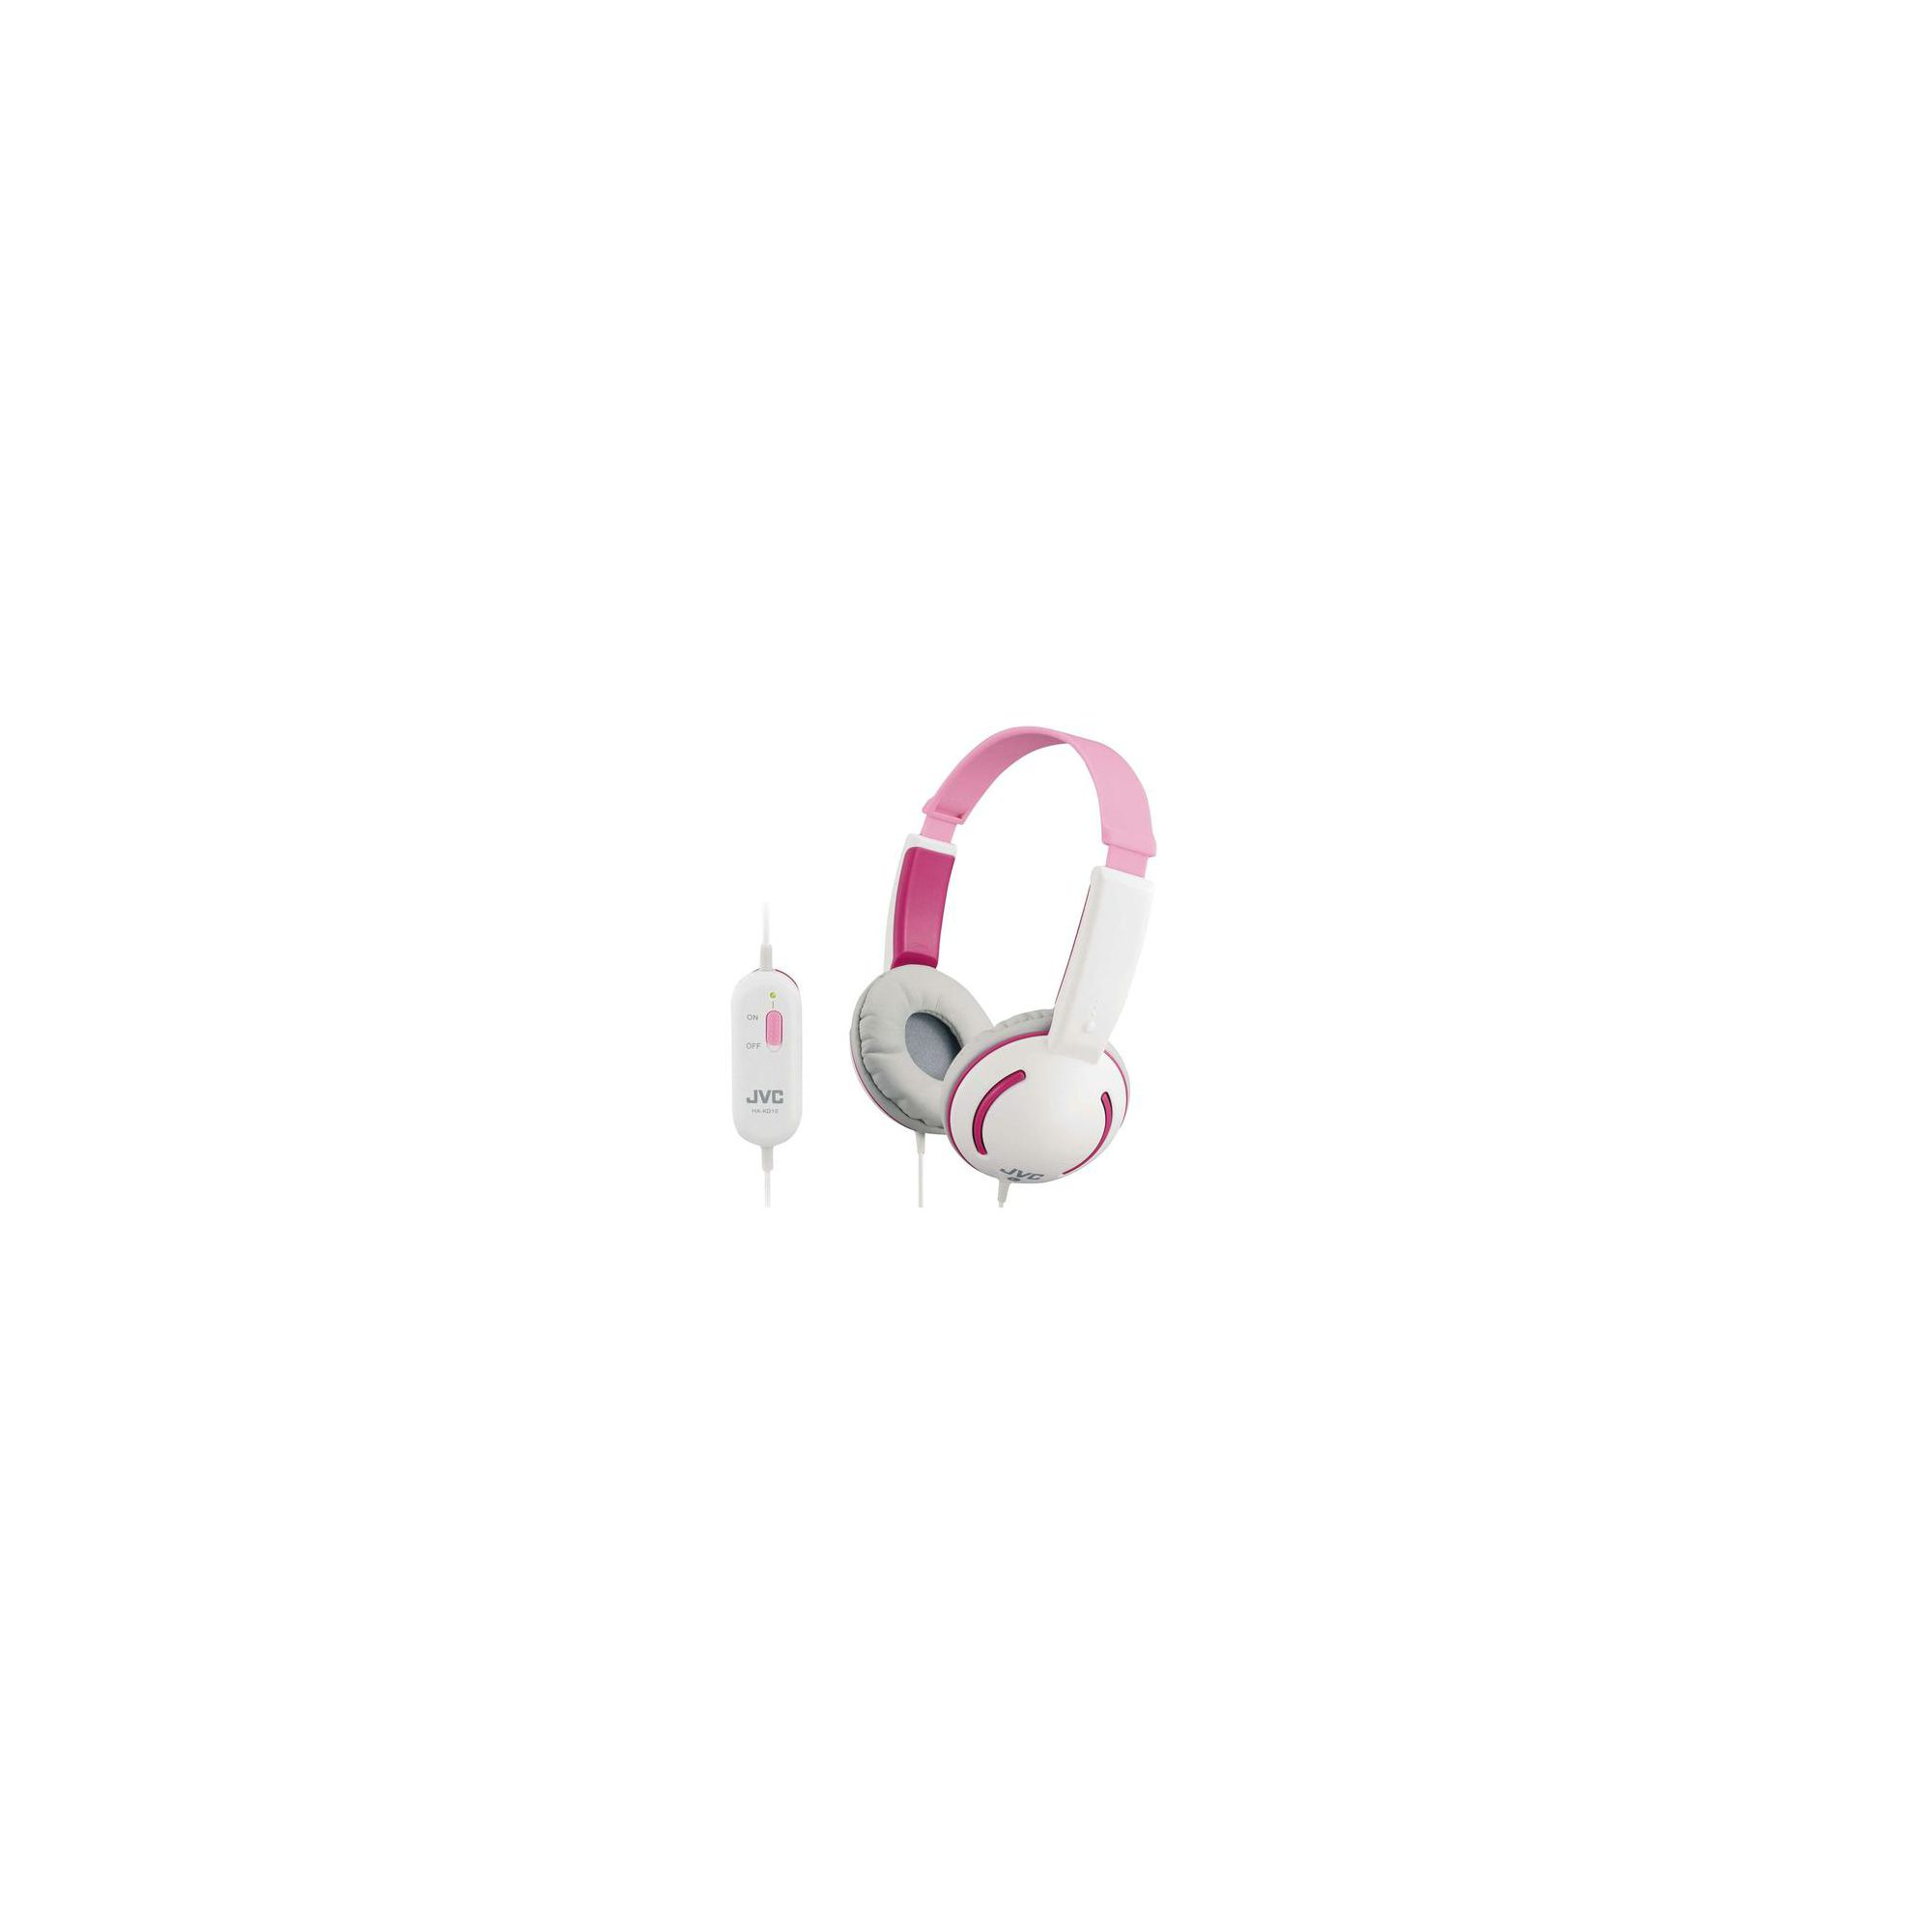 JVC HAKD10P Tiny Headphones for Kids - Pink